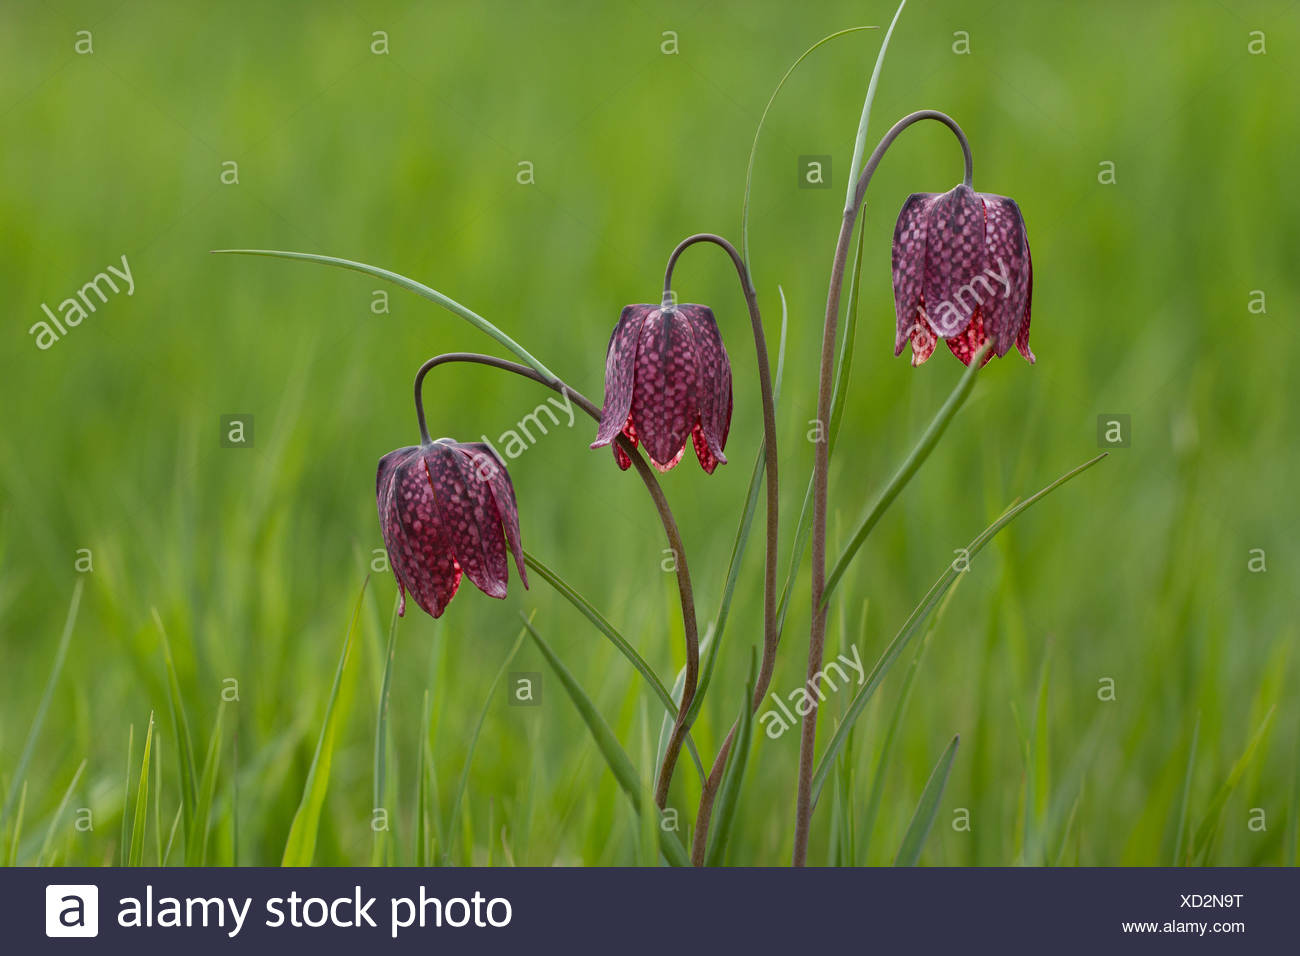 Nature, Flower, fritillary, snake's head guinea-hen flower, chess flower, Plantae, Liliales, Fritillaria meleagris, Switzerland Stock Photo